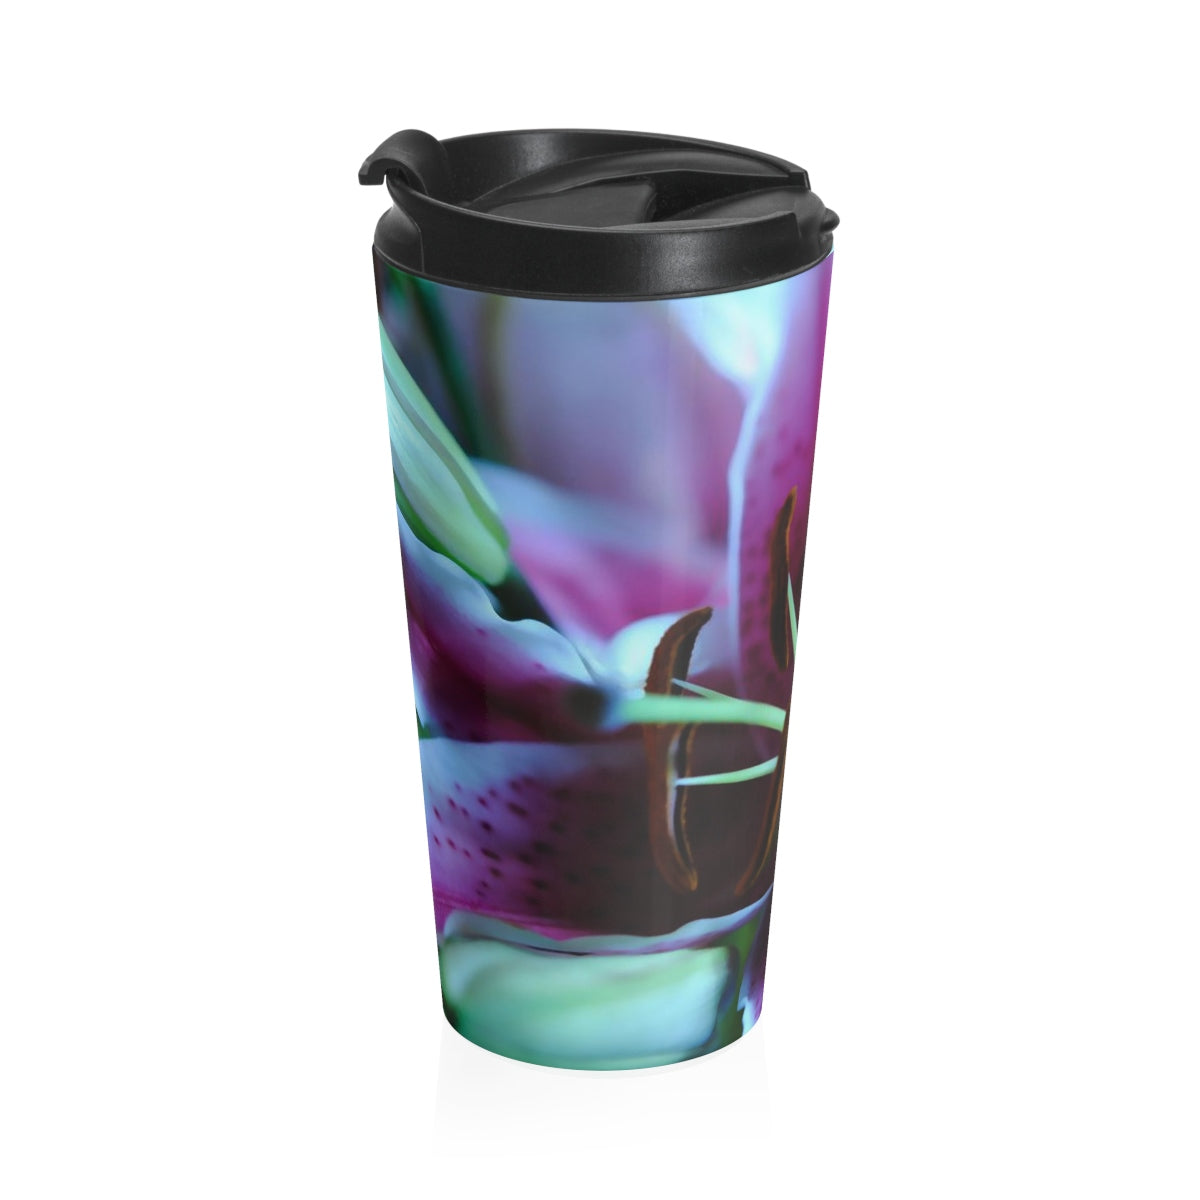 Flower 32 Stainless Steel Travel Mug - expressive-flower-art-goods.myshopify.com